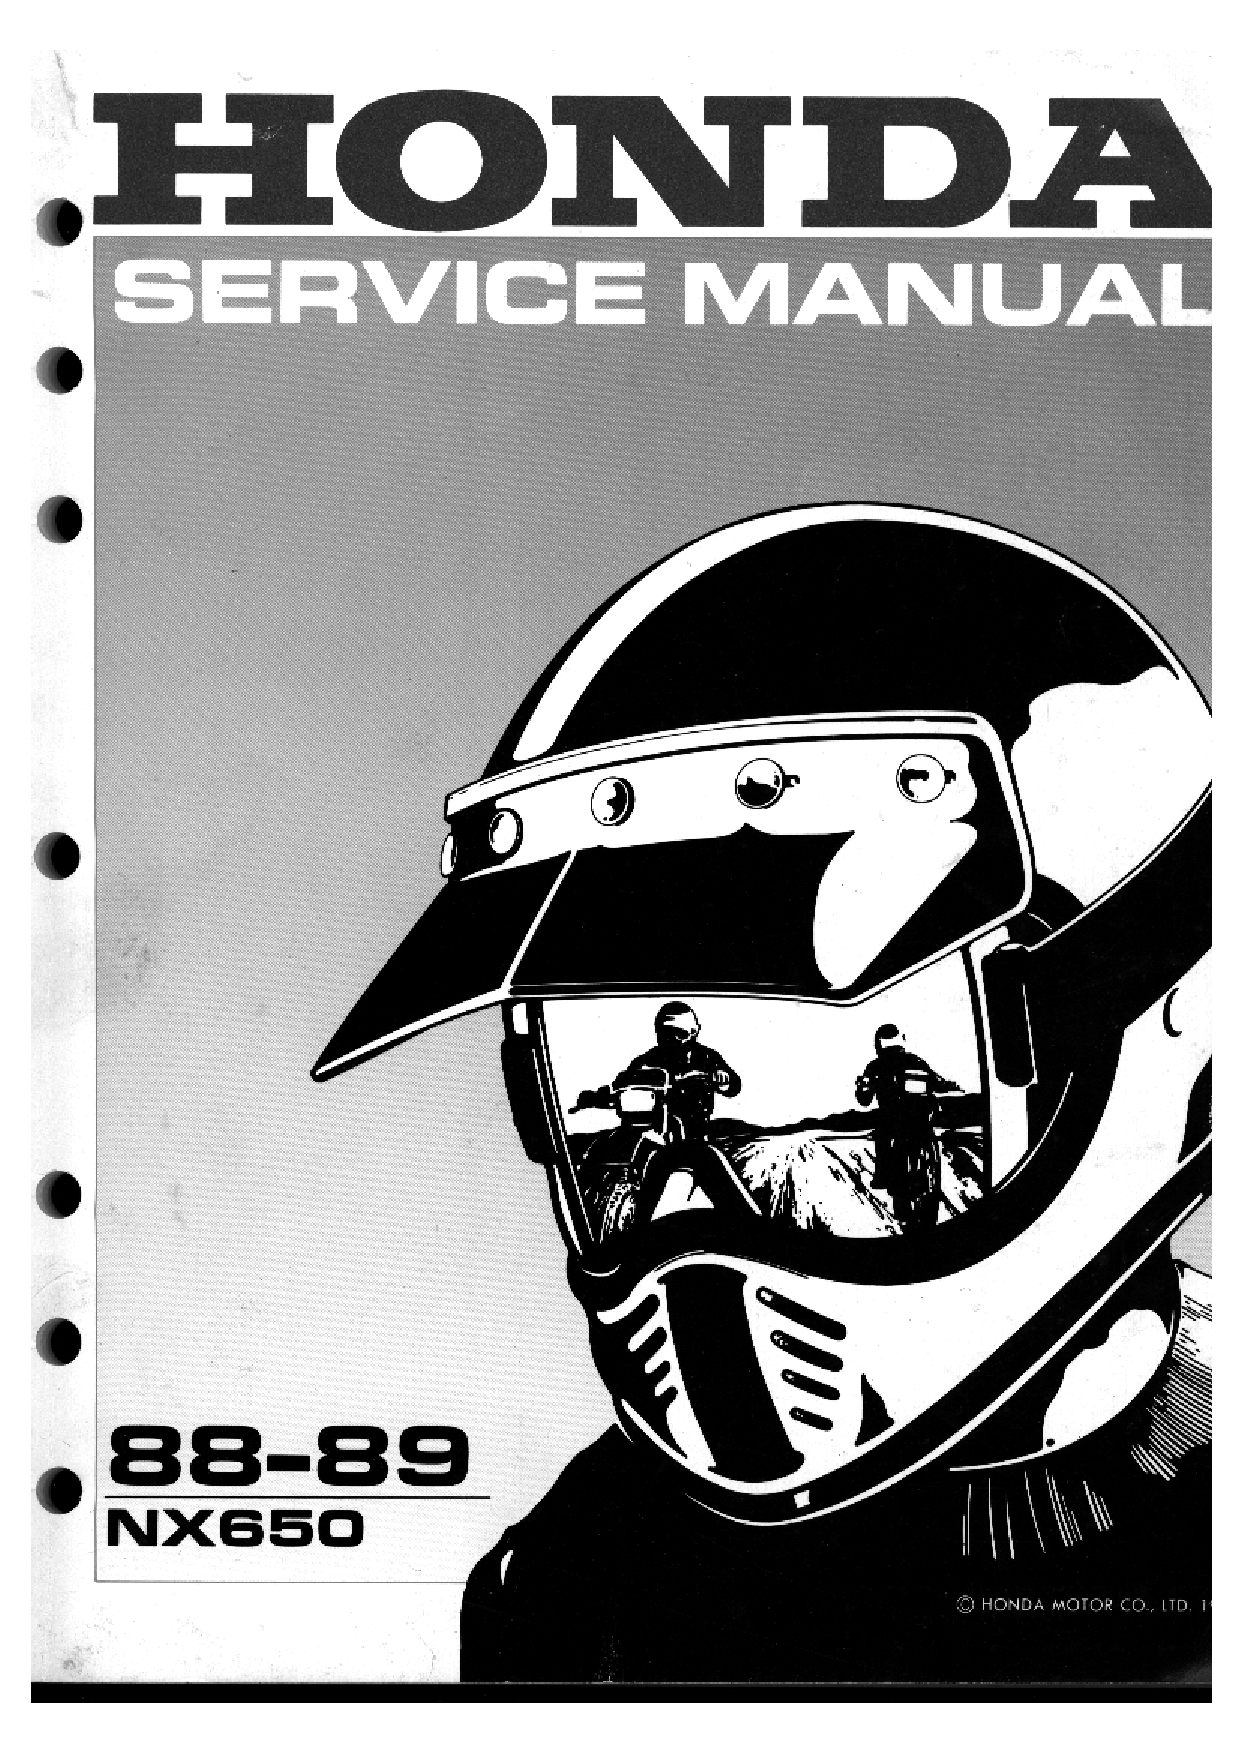 Honda 650 88 89 Nx 650 88 89 Nx650 1988 Nx650 1989 Service Manual A Section 1 Service Manual